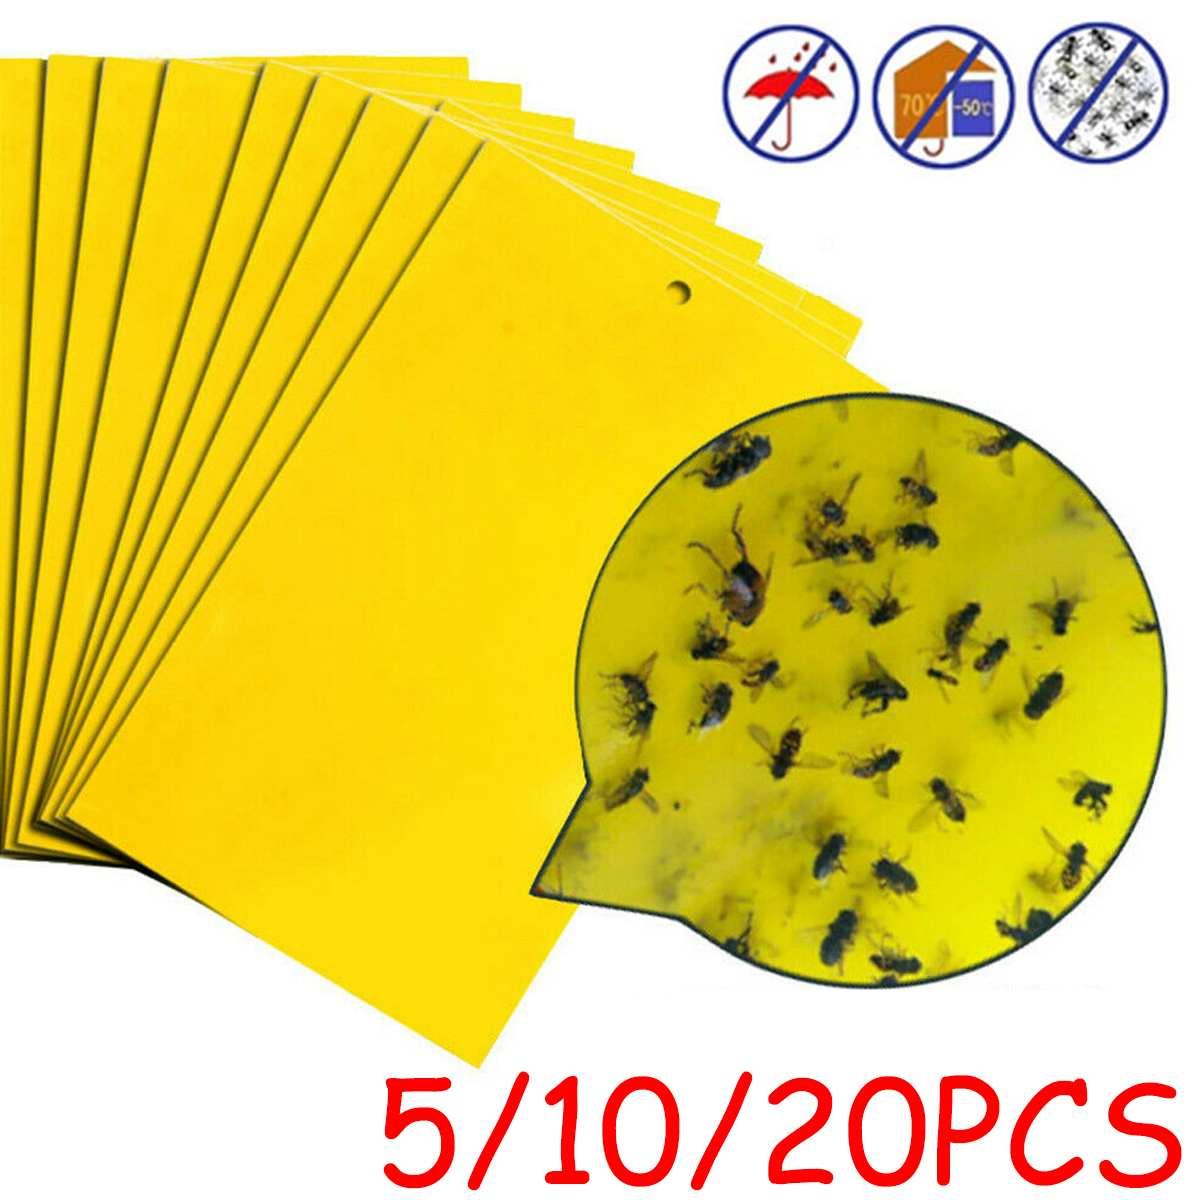 (5/10/20Pcs) 15X20cm Large Area Hanging Sticky Glue Boards For Fly Pest Insect Trap Catchers Bug Stickers